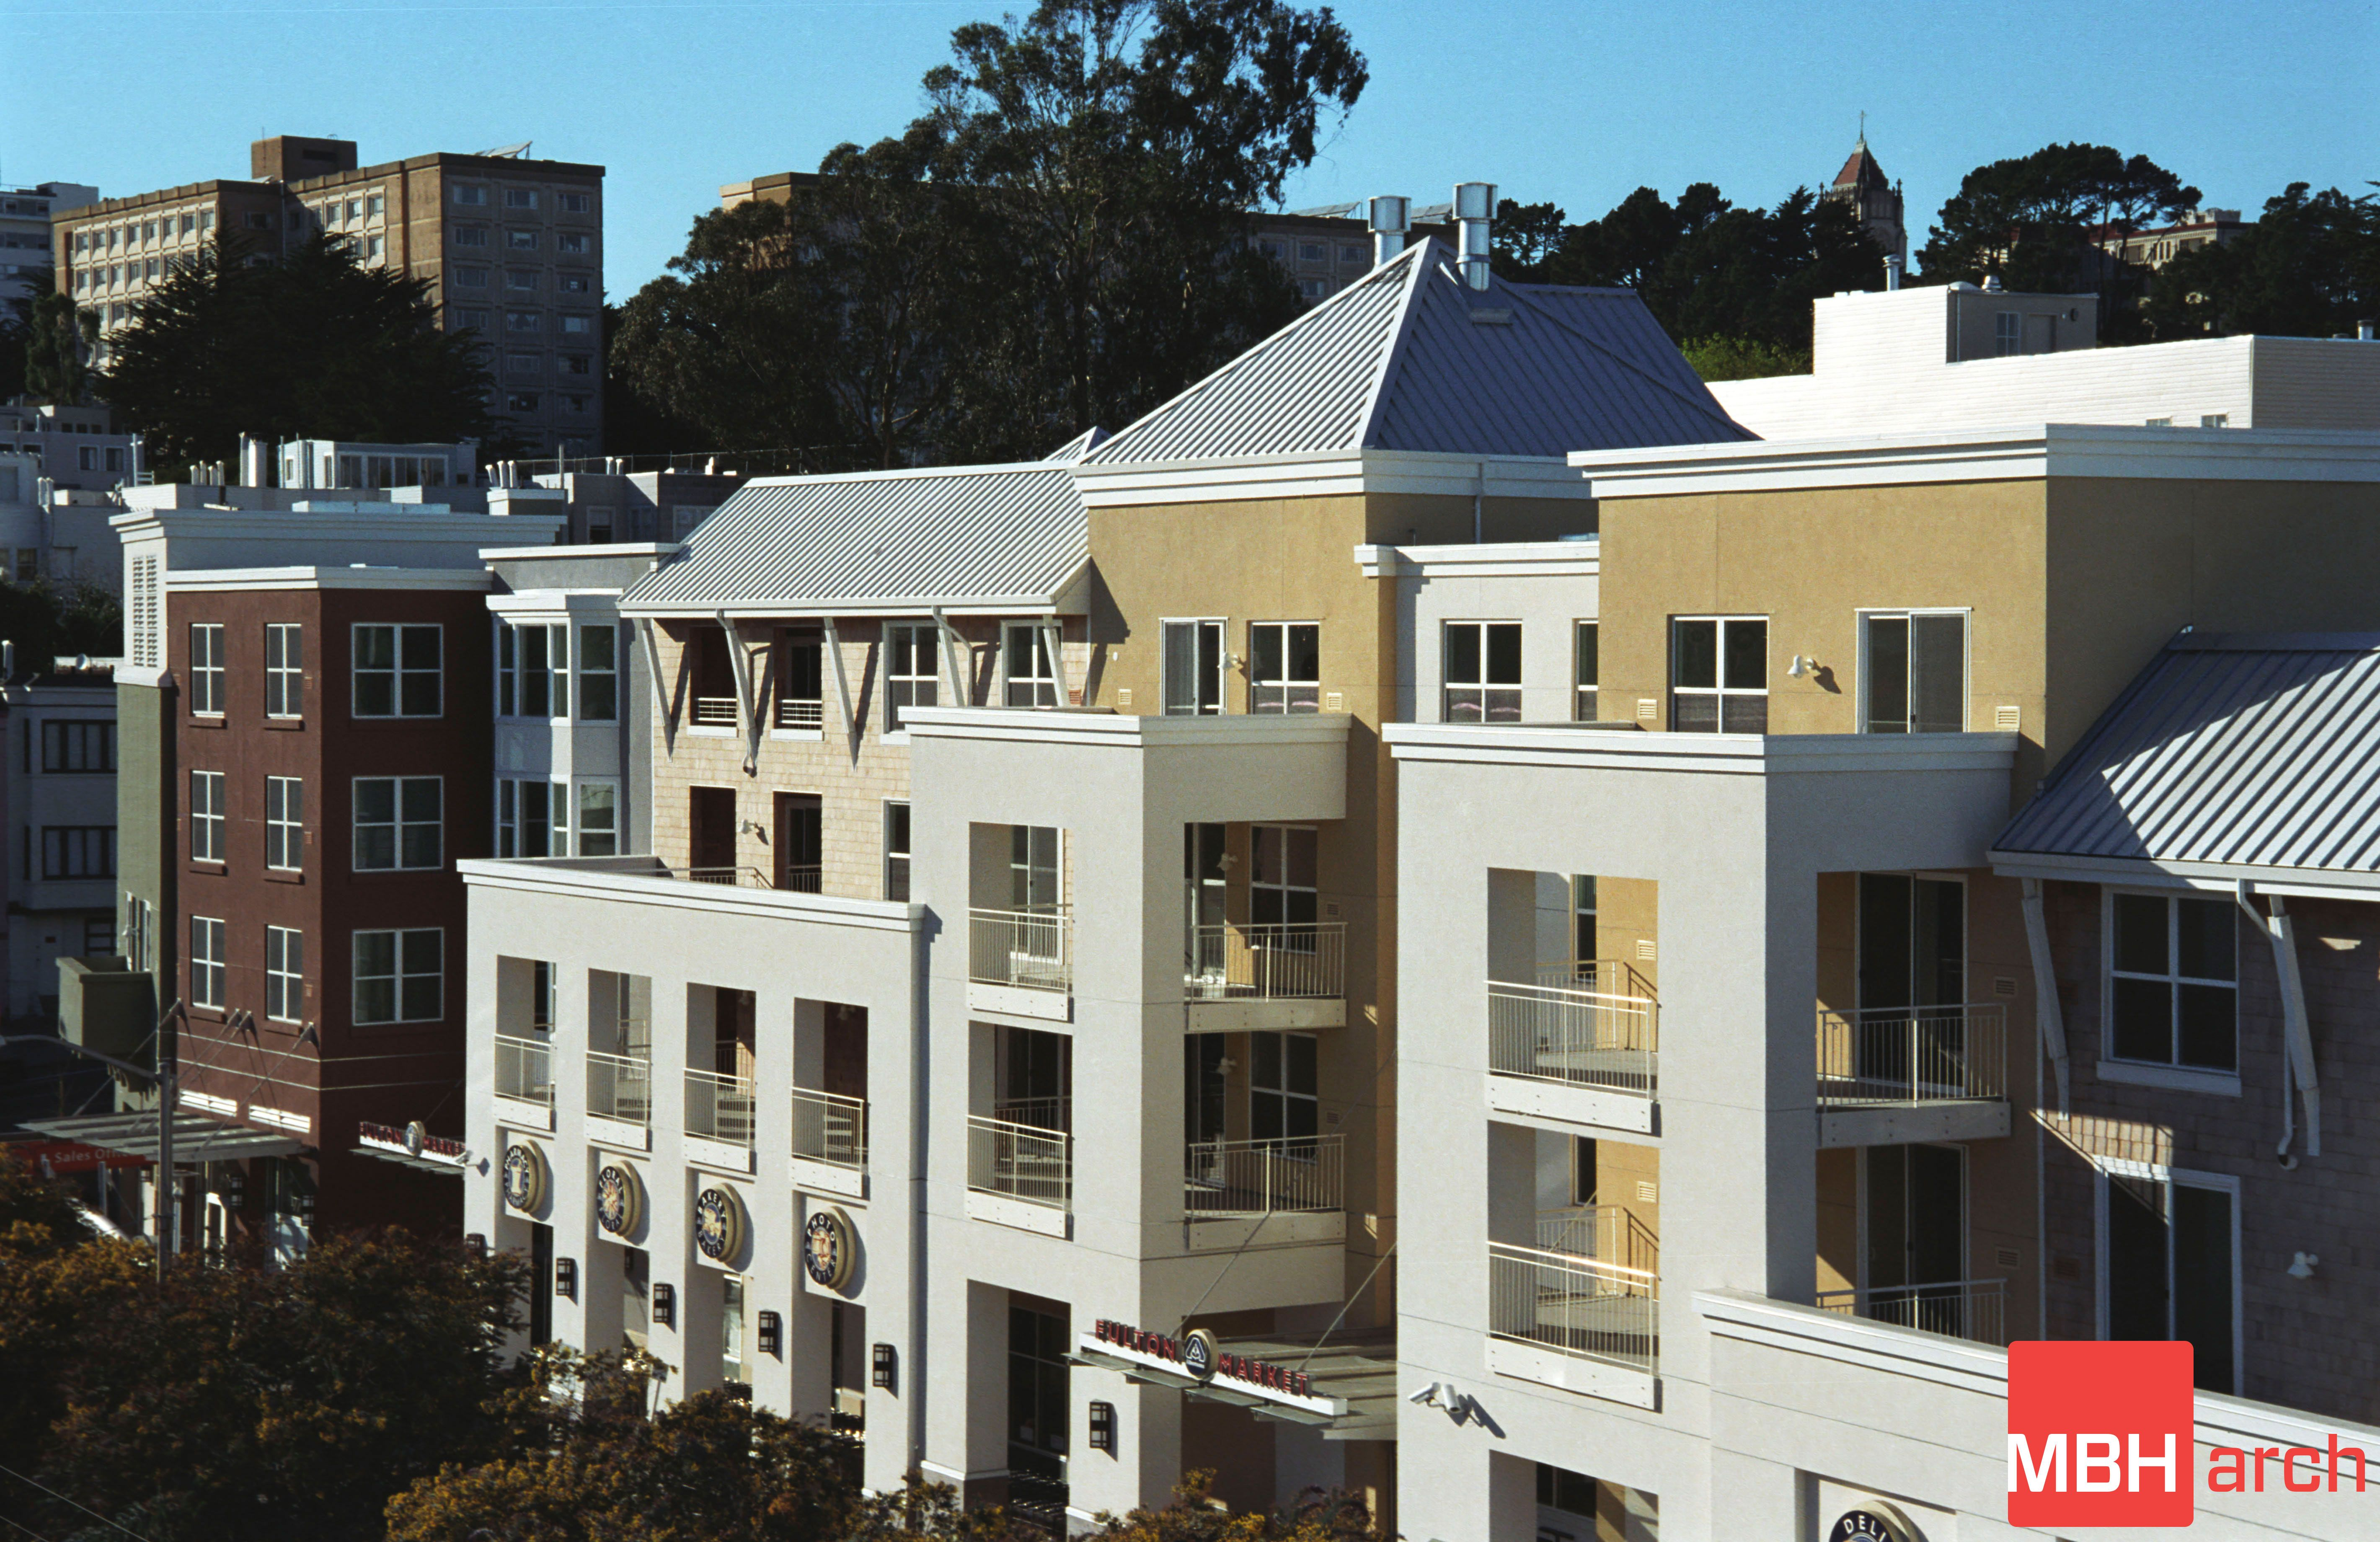 Petrini Place Mbh Architects Is A Full Service Architecture Firm Headquartered In The San Francisco B Healthcare Architecture Architect Multifamily Housing